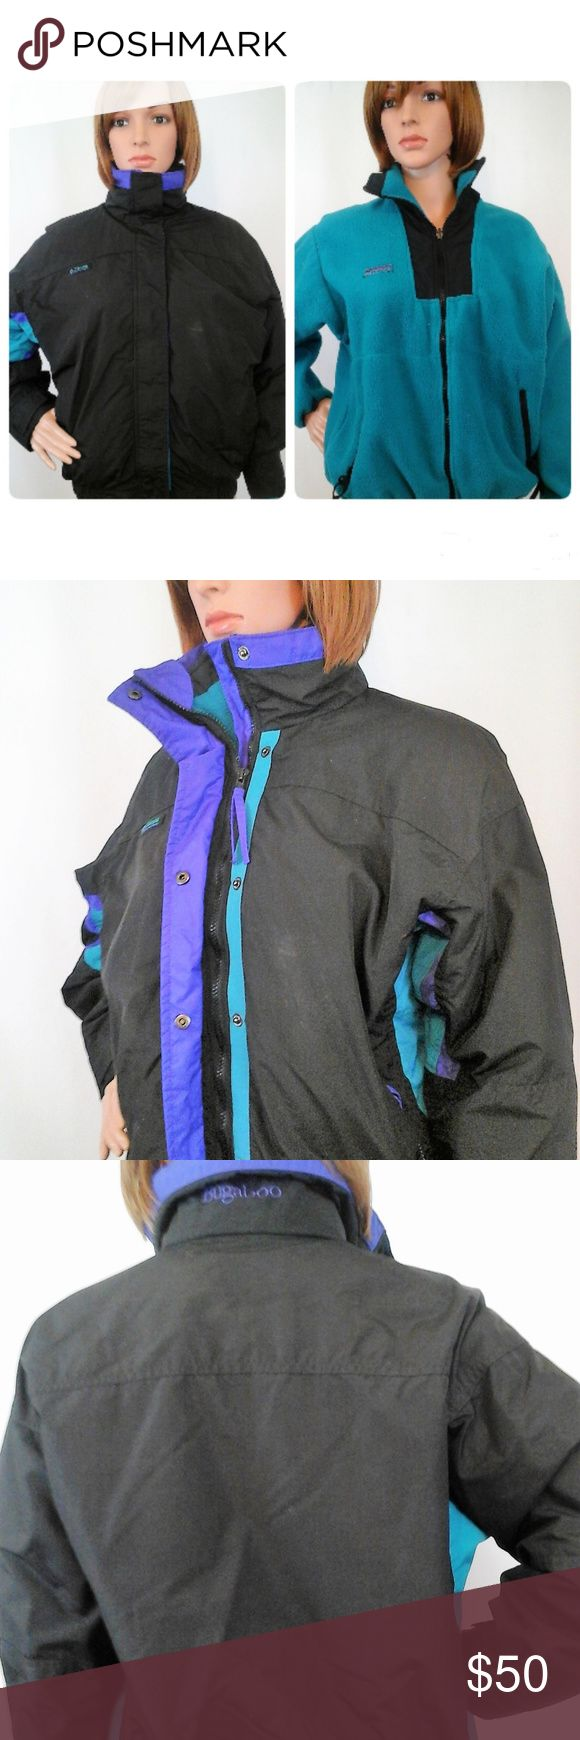 "Champion Sz Medium Black Bugaboo 3 in 1 Ski Jacket Gently worn, clean and in excellent pre-owned condition. This vintage jacket can be worn three ways:  outer jacket alone, fleece inner jacket alone, or both combined.  Chest = 20"" (armpit to armpit - across the front) Length = 23"" (shoulder to hem) Material:  Polyester Features:   Button & zip front, 2 lower zip pockets on both pieces  No trades or modeling of clothing or accessories.  I will gladly provide additional measurements if needed…"